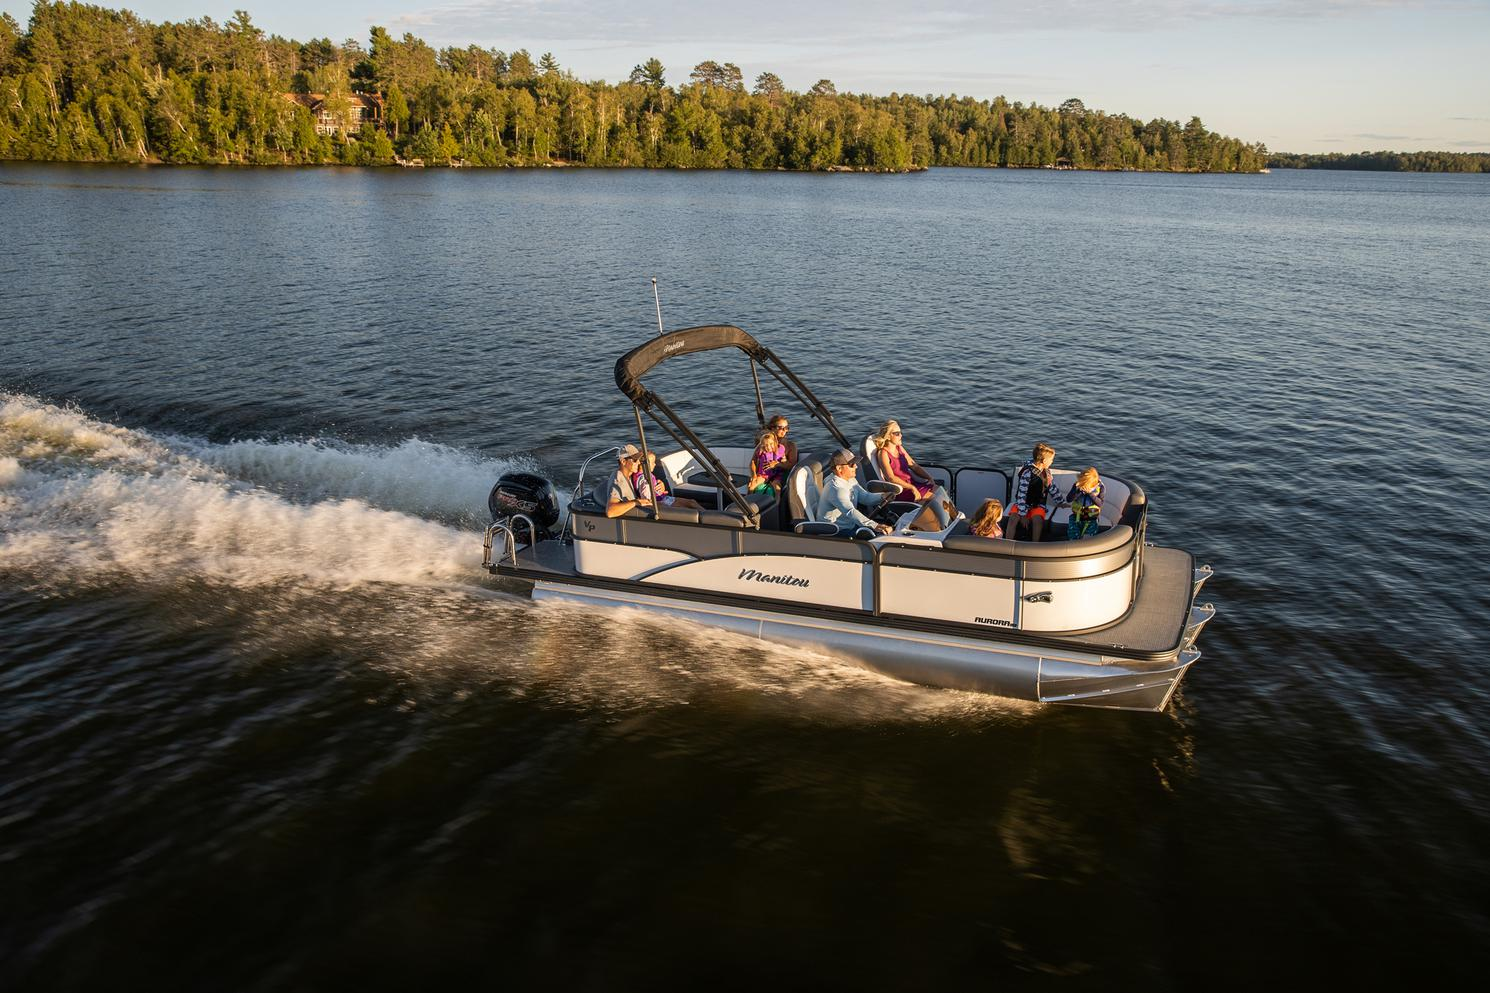 2021 Manitou Pontoon boat for sale, model of the boat is AURORA & Image # 10 of 11